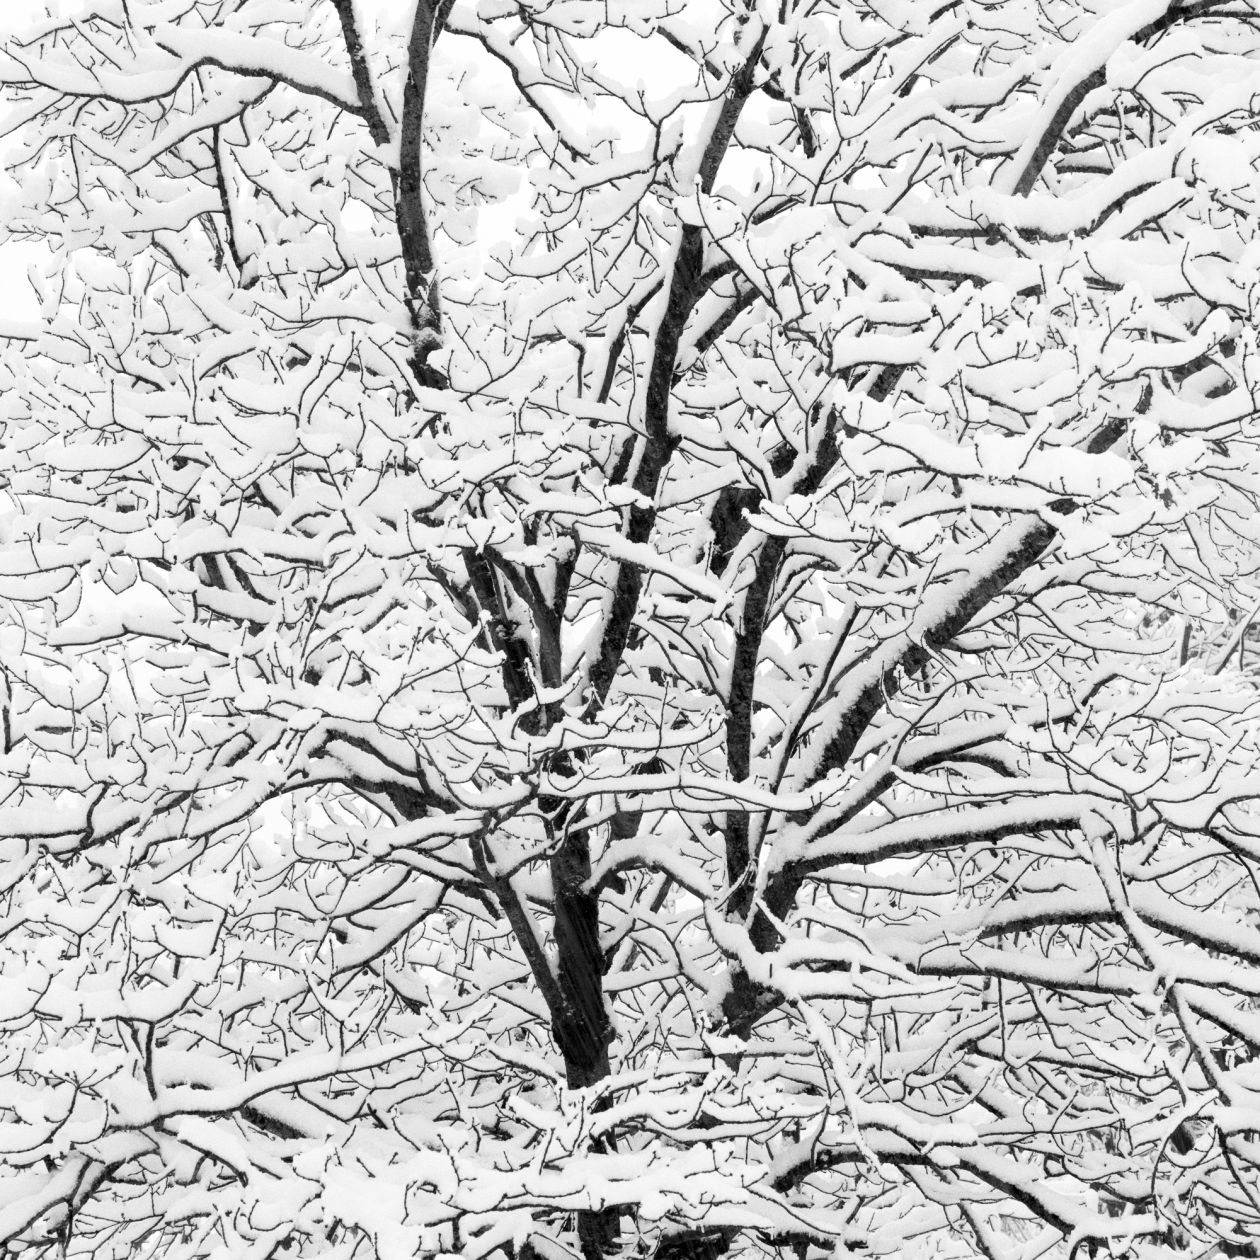 Snow Covered Branches (2005) by Jeffrey Conley